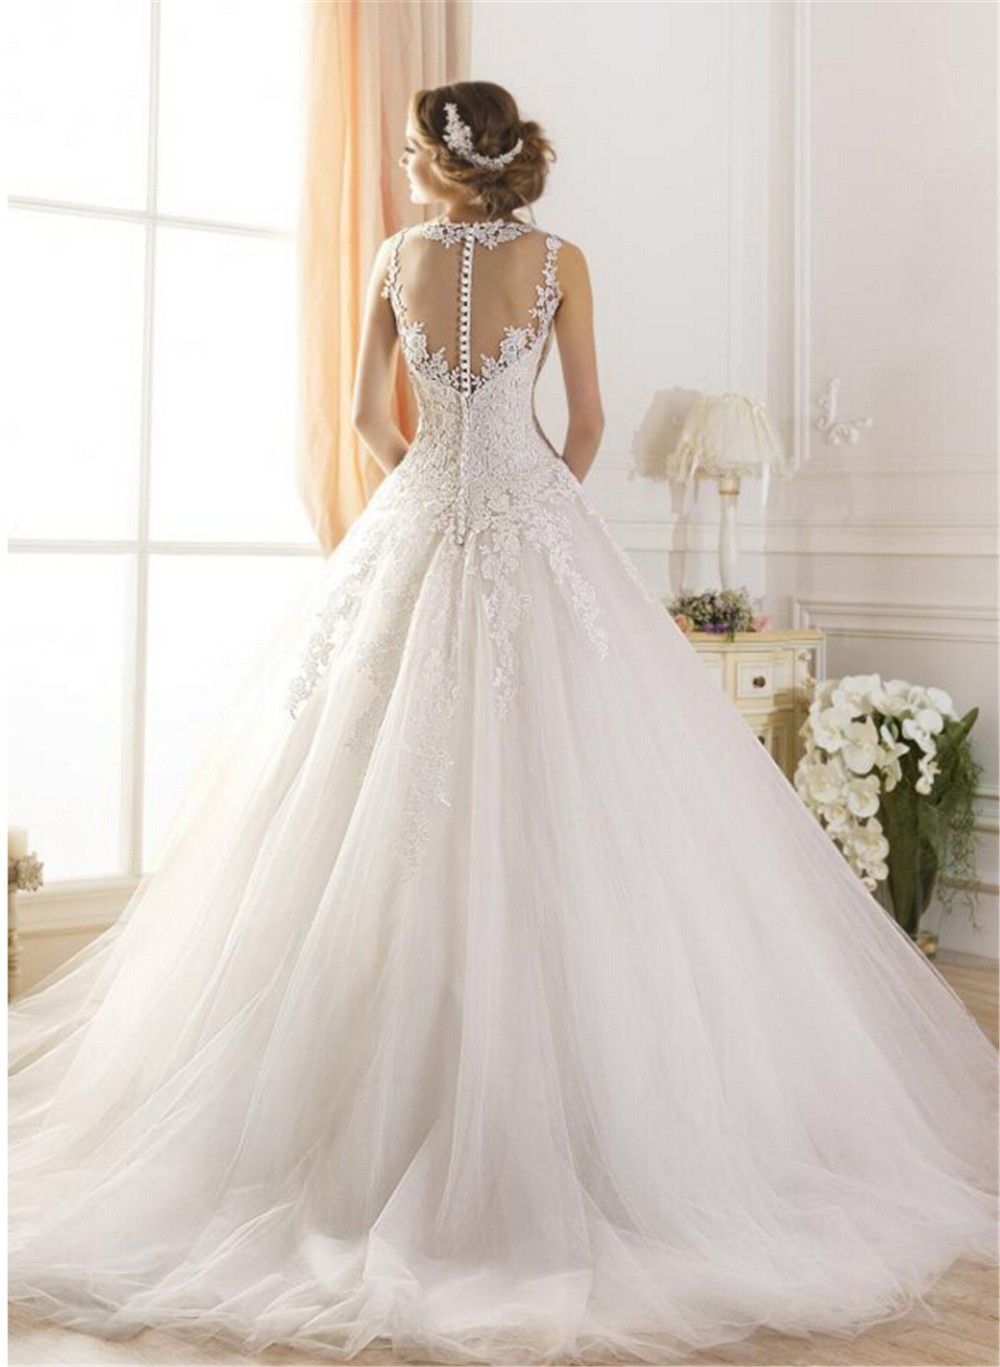 wuzhiyi Wedding Dress 2017 Princess Lace A line Appliques Scoop Bridal Gown Luxury Vintage Sleeveless vestido de novia Plus Size